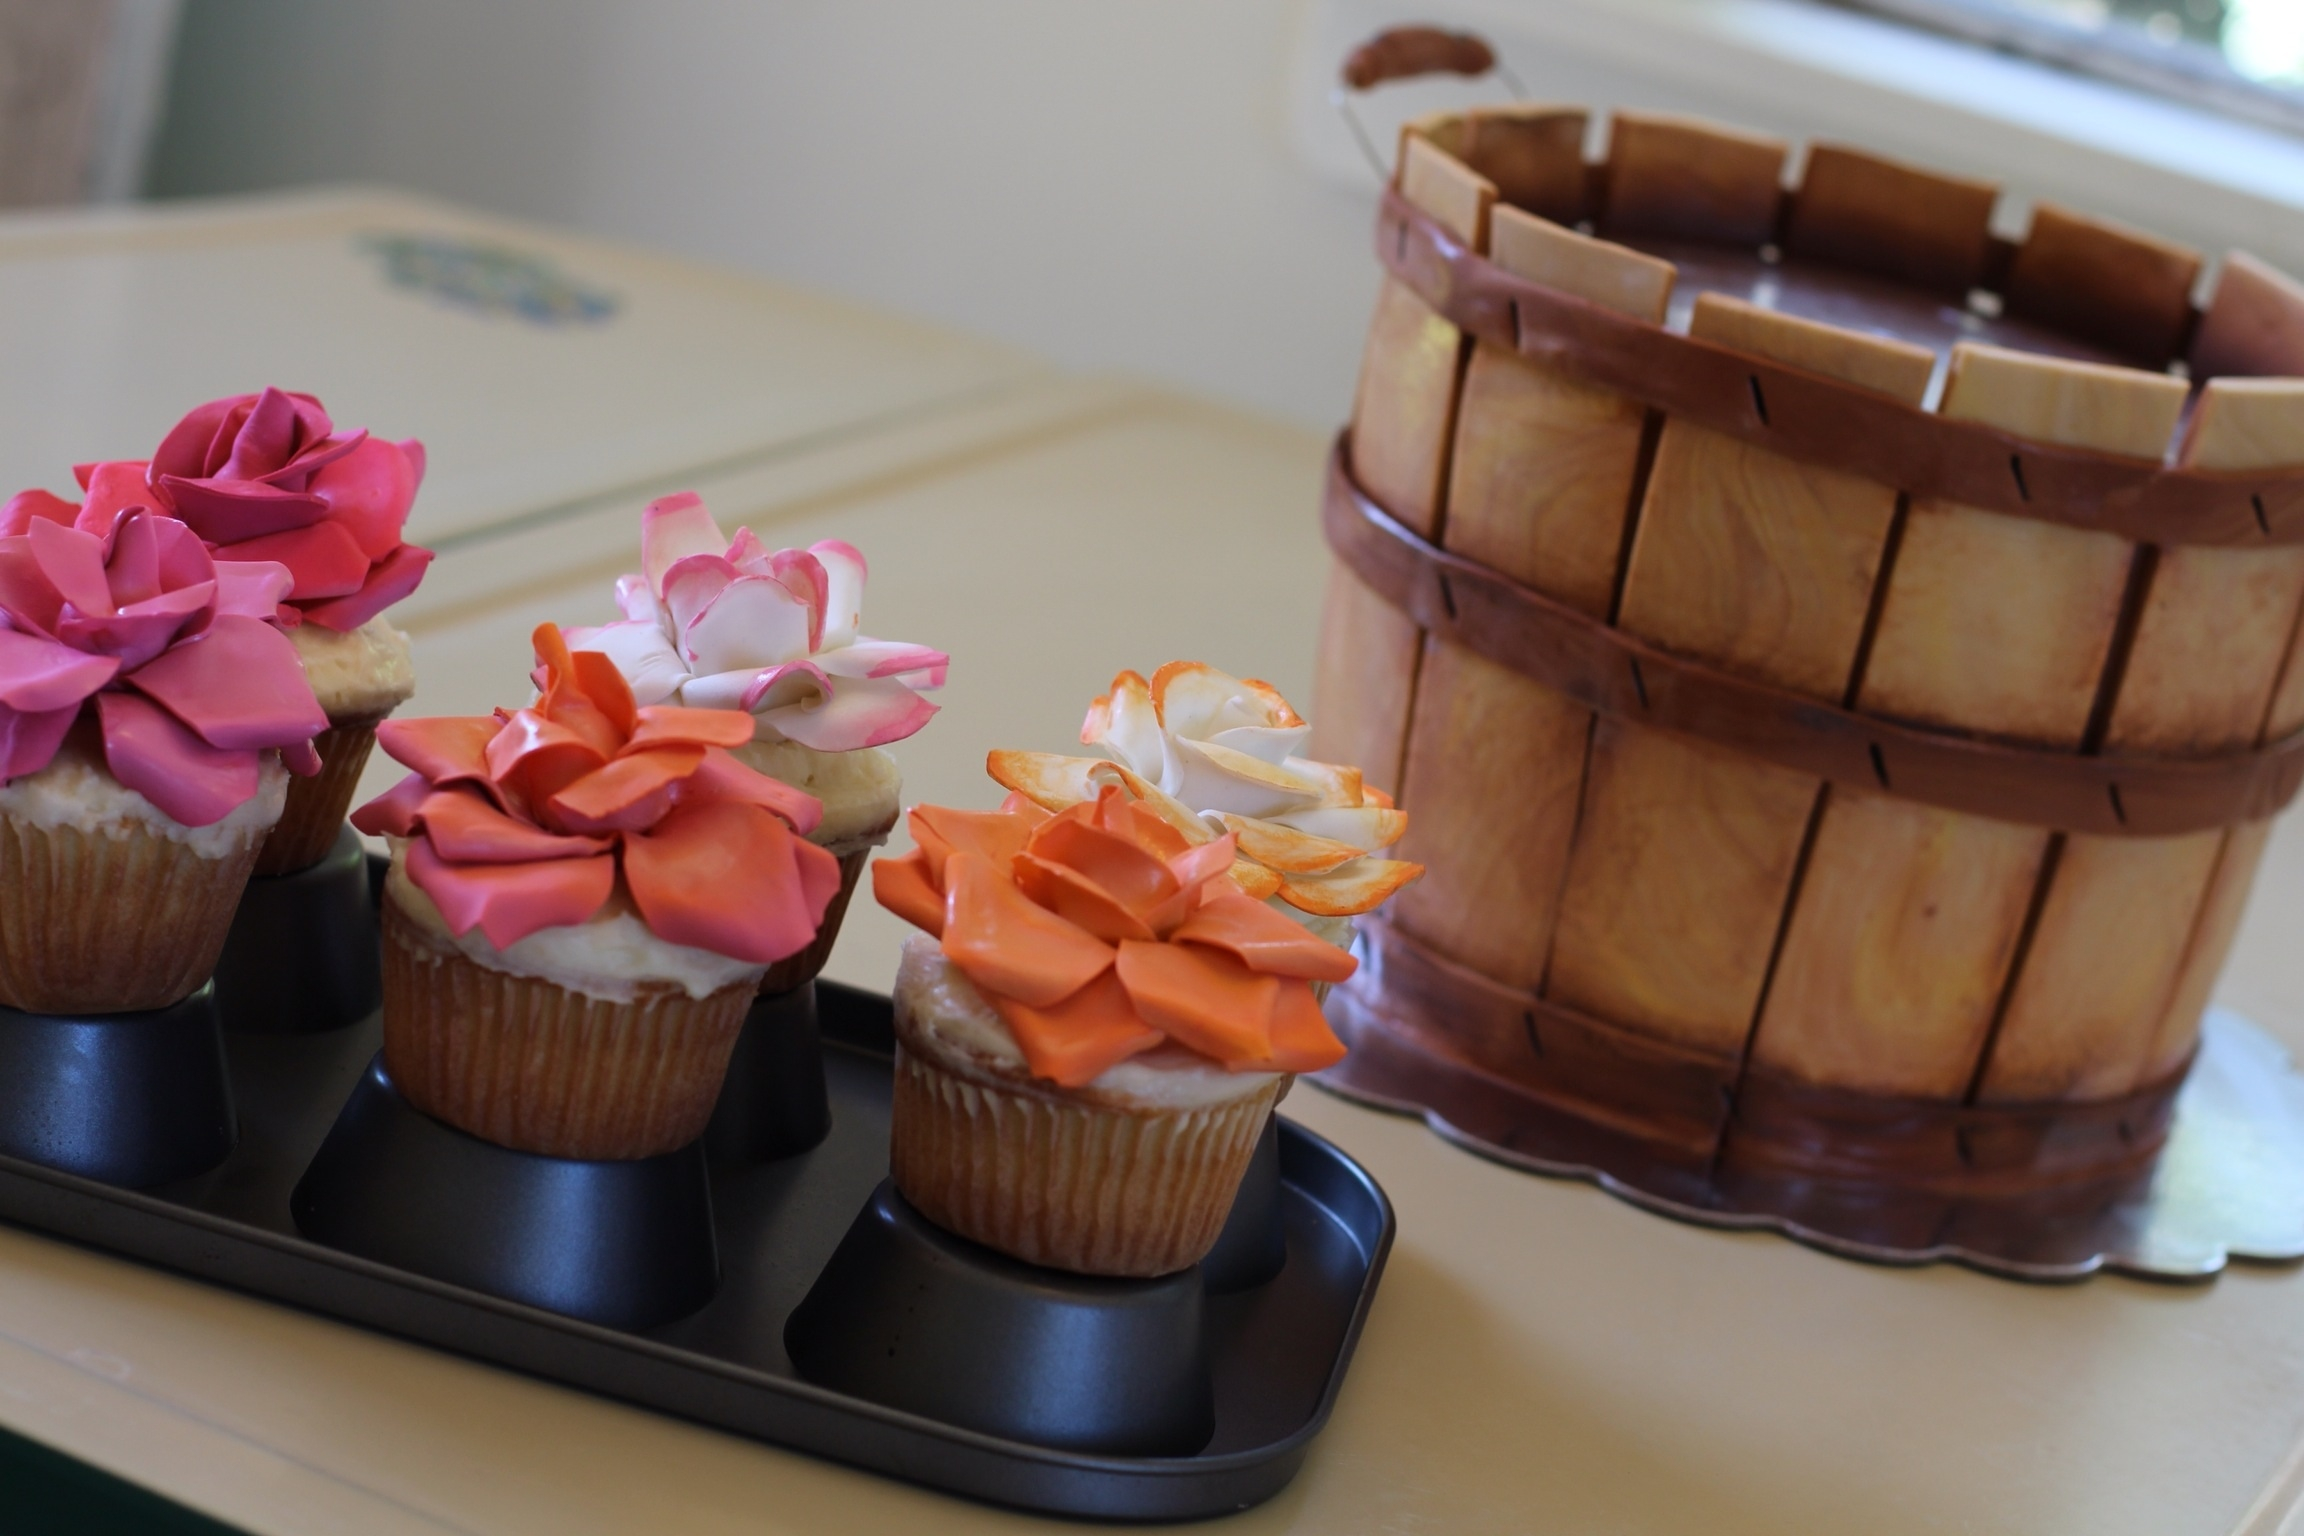 Cake Art Flower Moulding Paste : Wooden Basket And Flower Cupcake Cake Modeling Chocolate ...